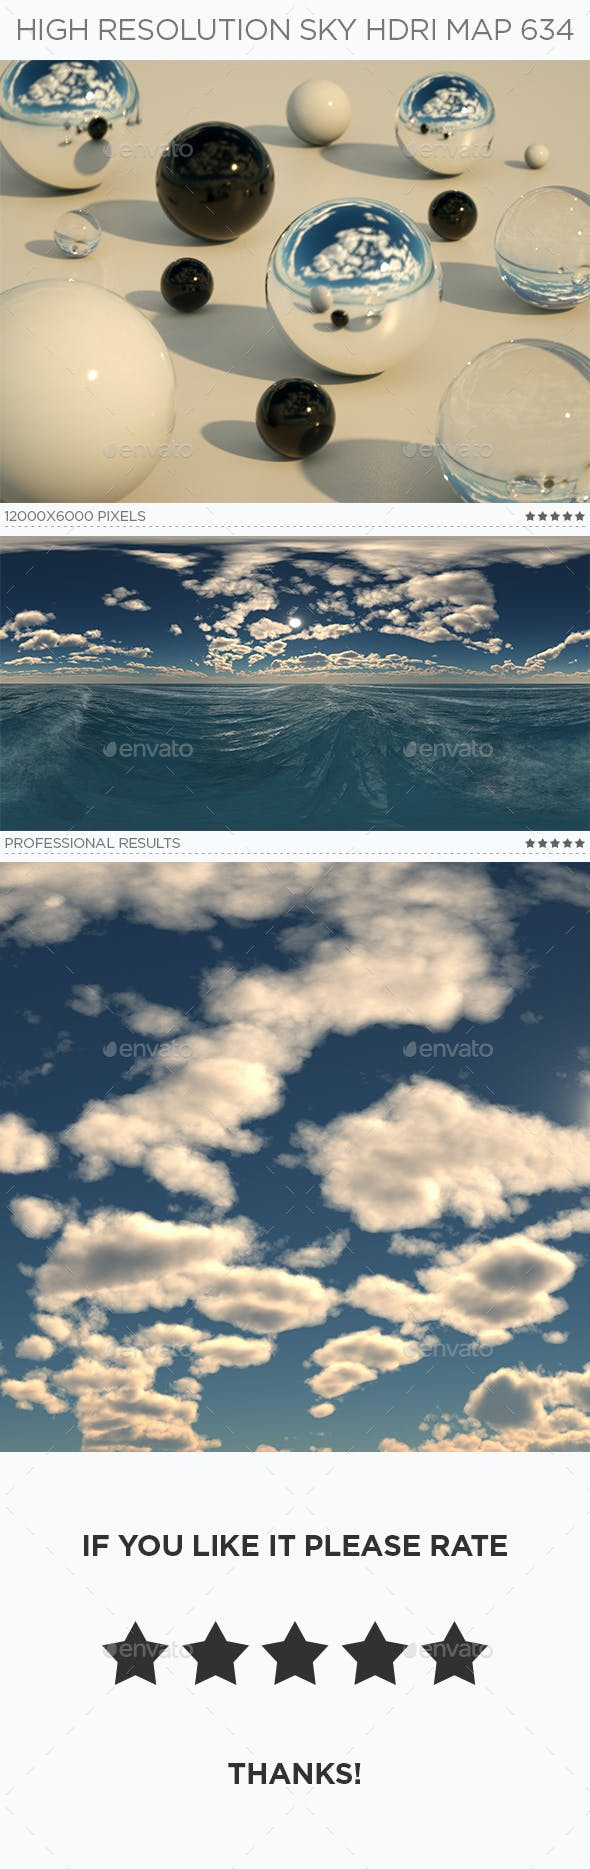 High Resolution Sky HDRi Map 634 - 3DOcean Item for Sale